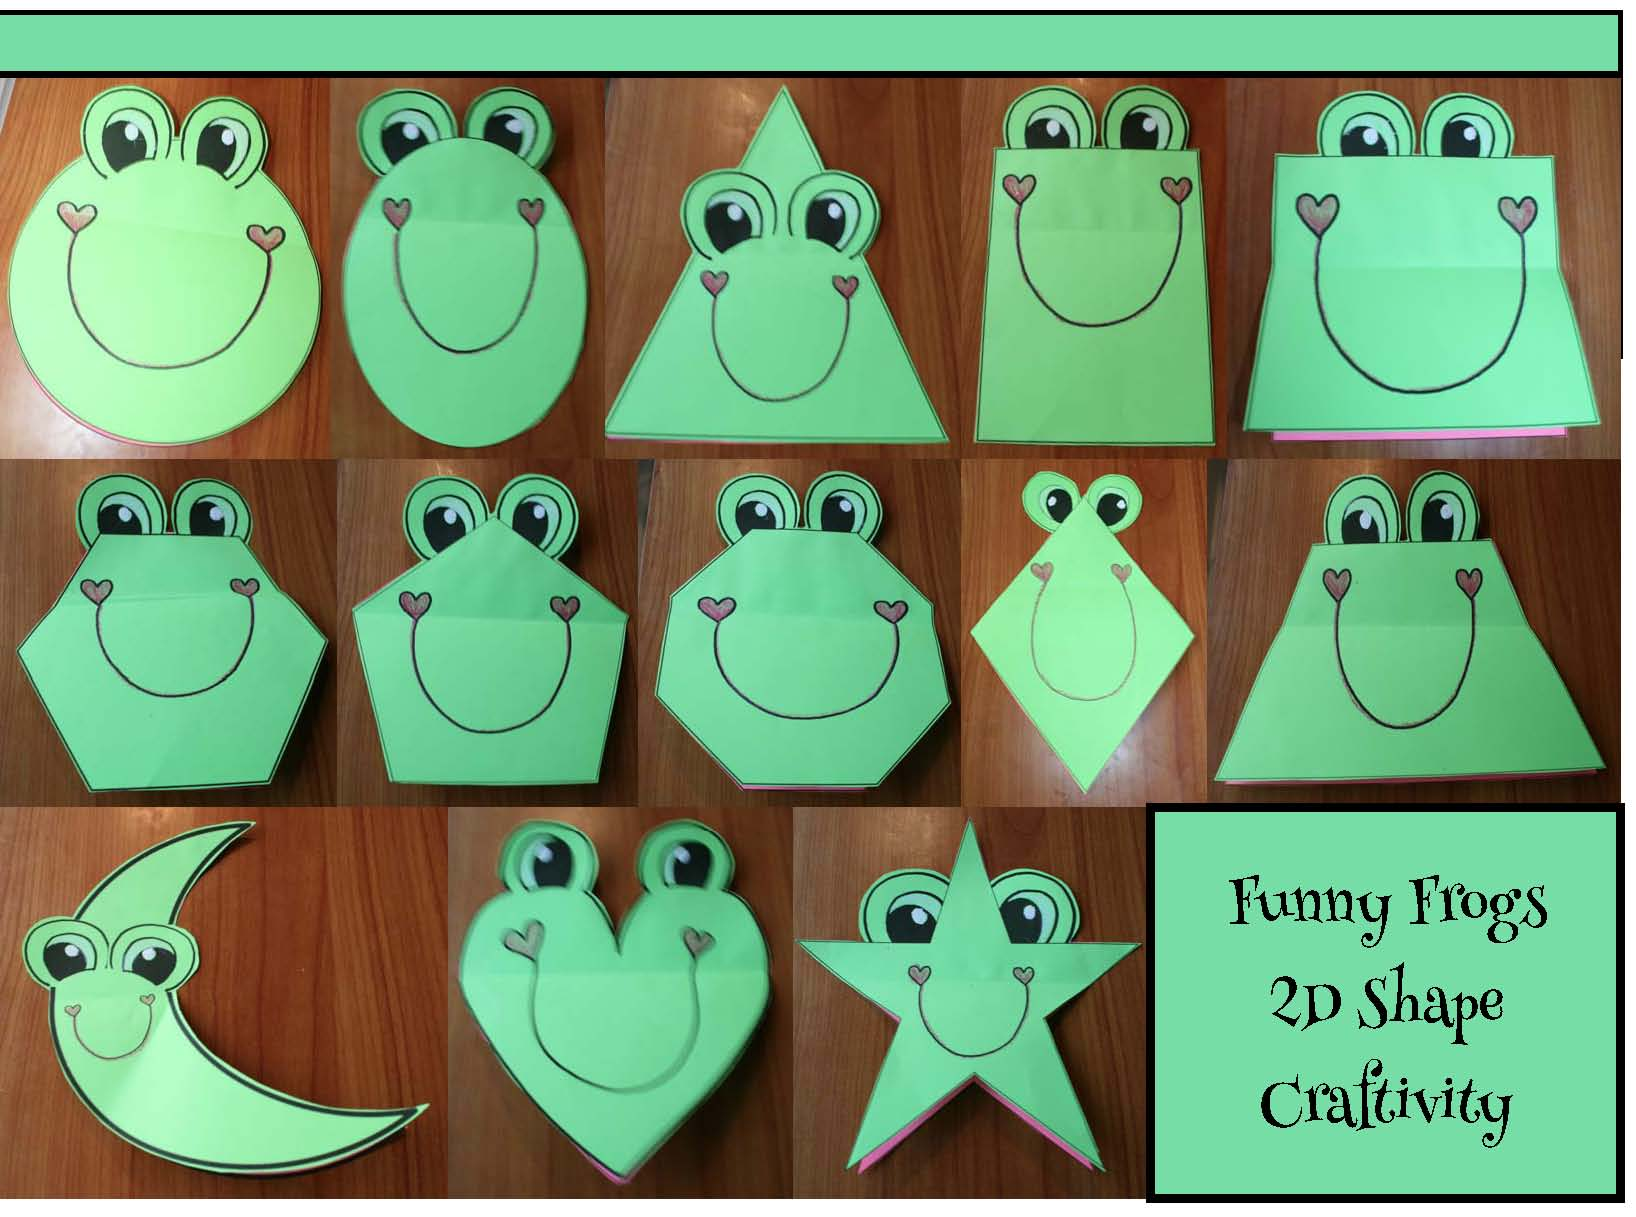 2D shape activities, shape games, shape crafts, shape bulletin boards, shape centers, frog crafts, frog activities,